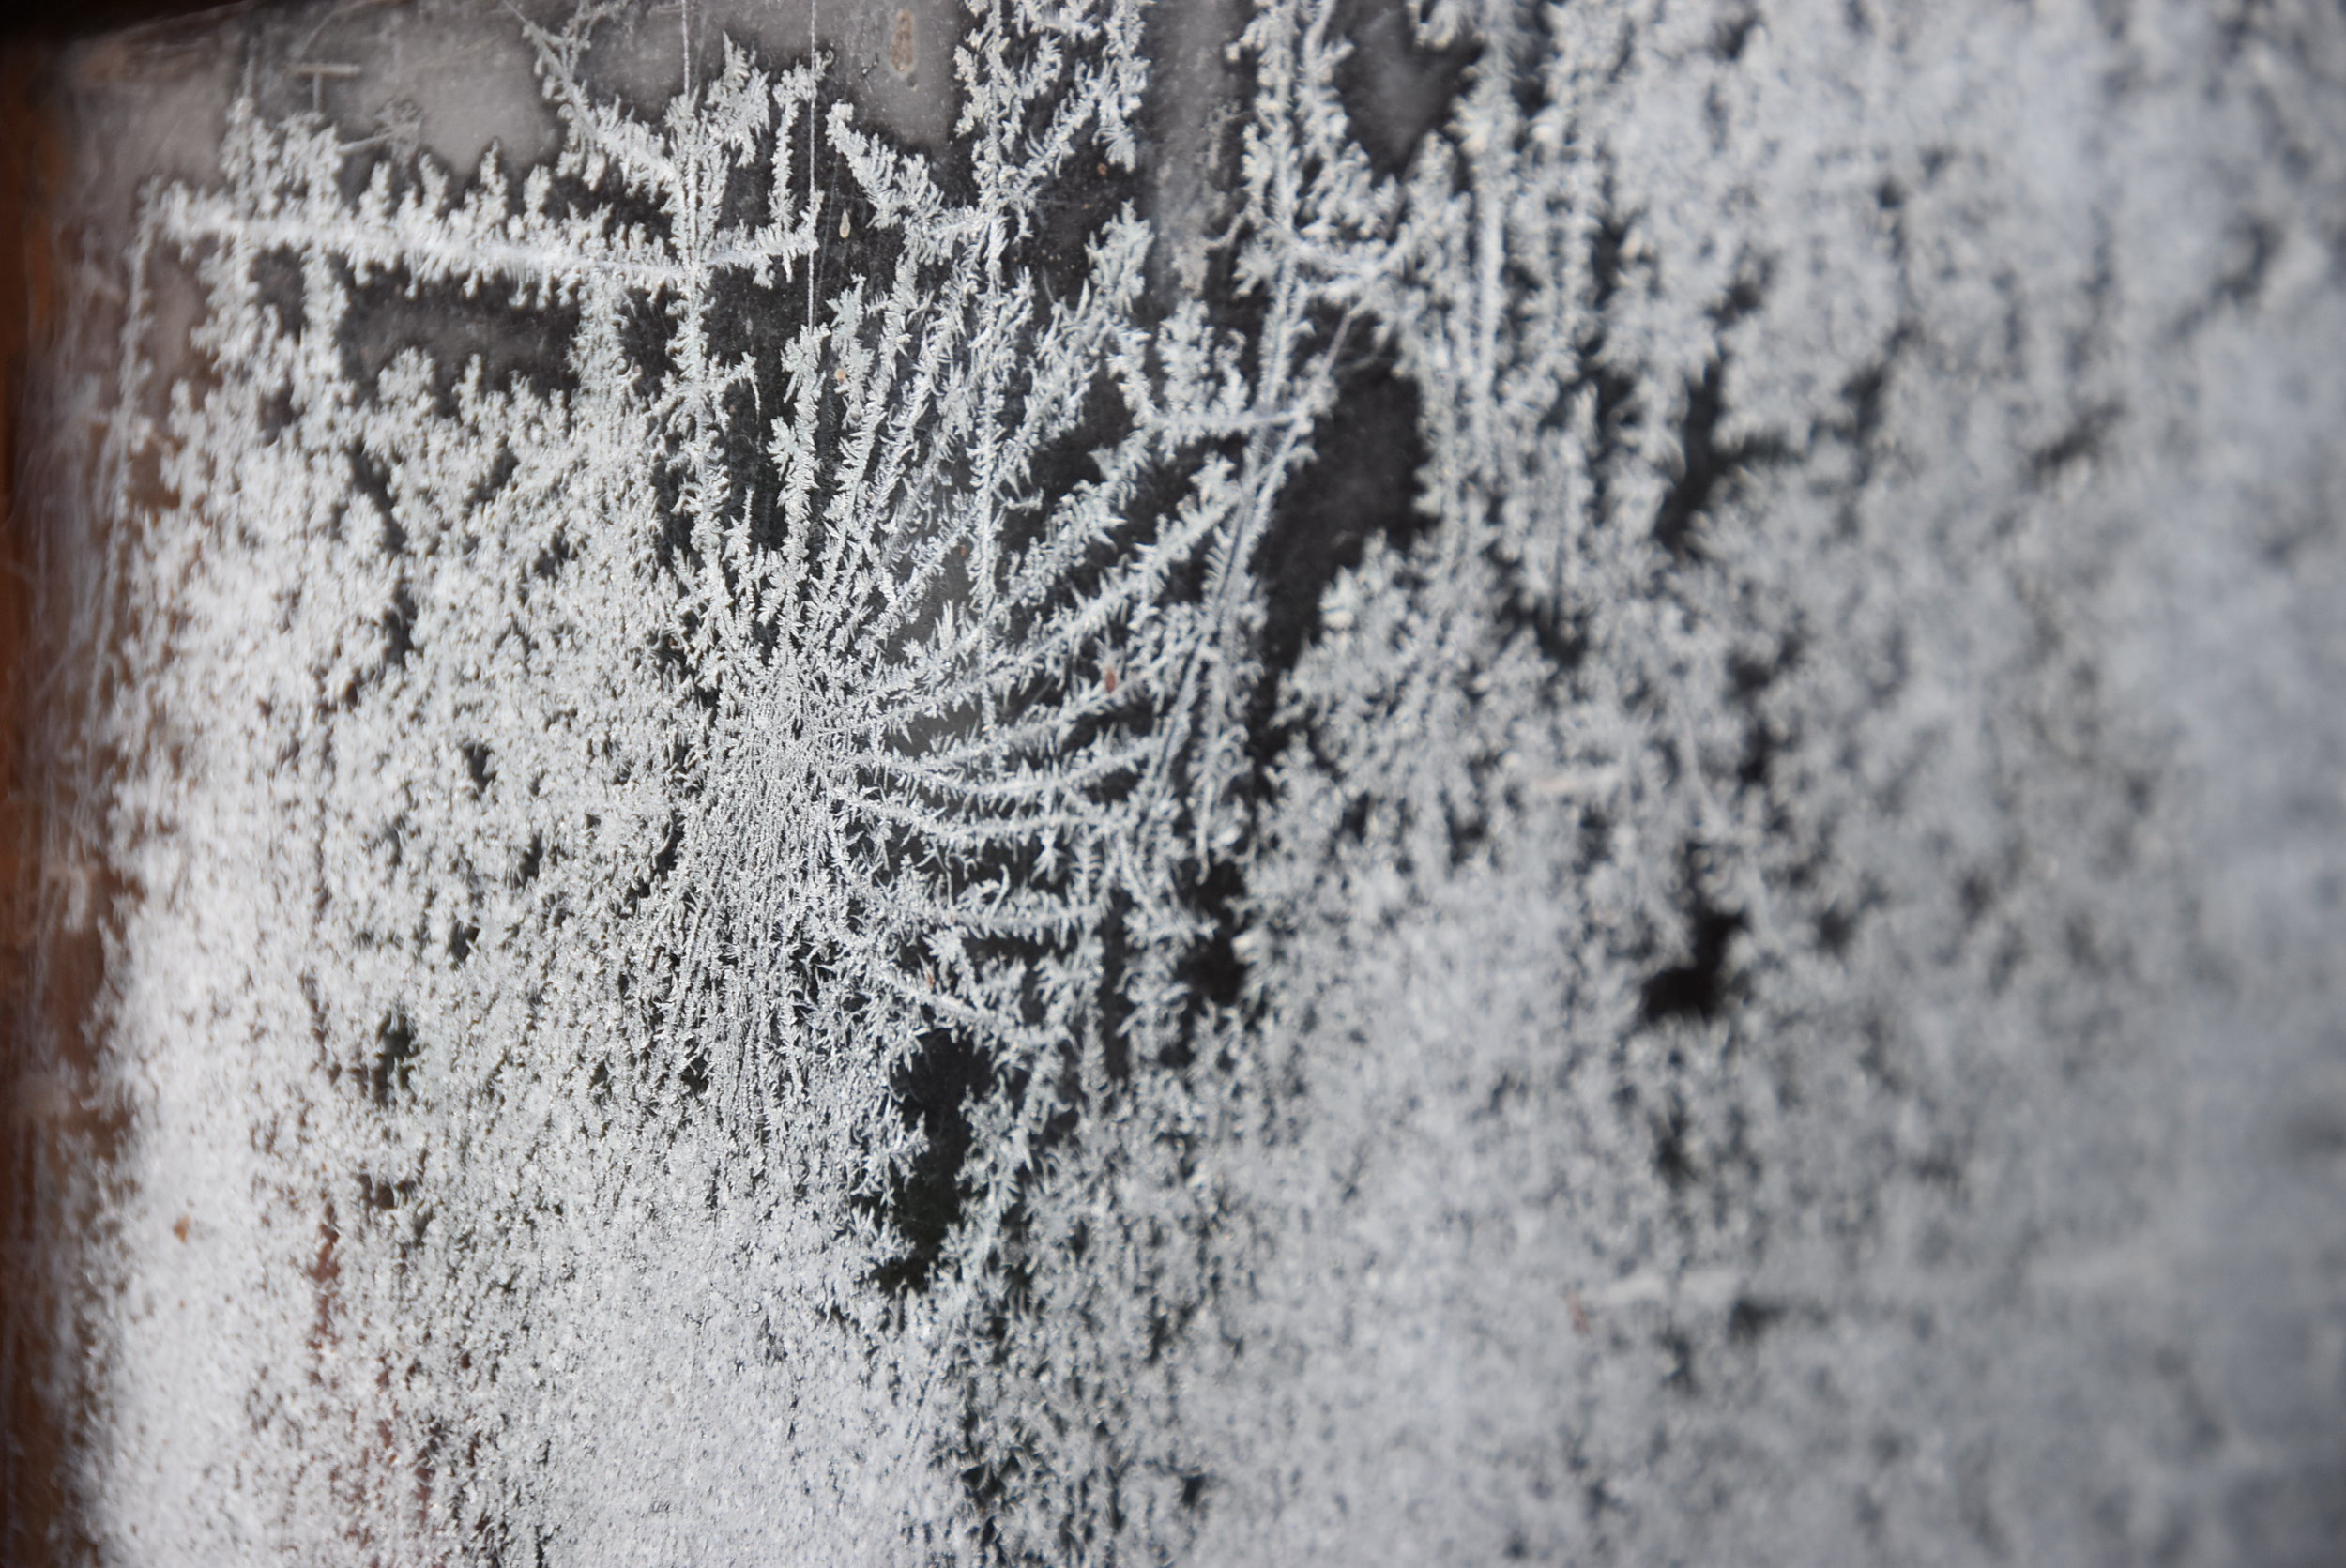 Spider web in the frost